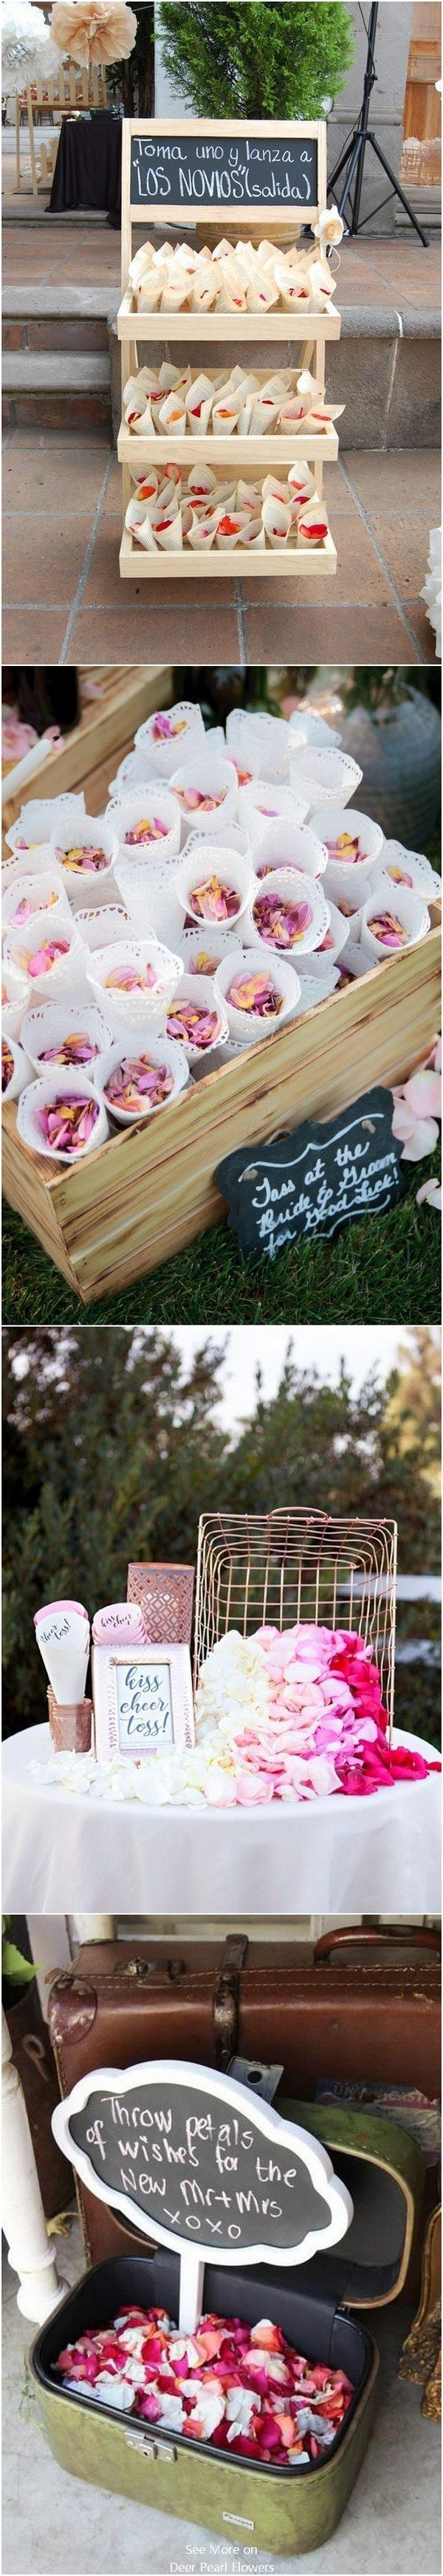 Wedding confetti wedding send off toss idea  #wedding #weddingideas #romanticwedding #weddingsendoff #rustic  http://www.deerpearlflowers.com/wedding-send-off-toss-ideas/